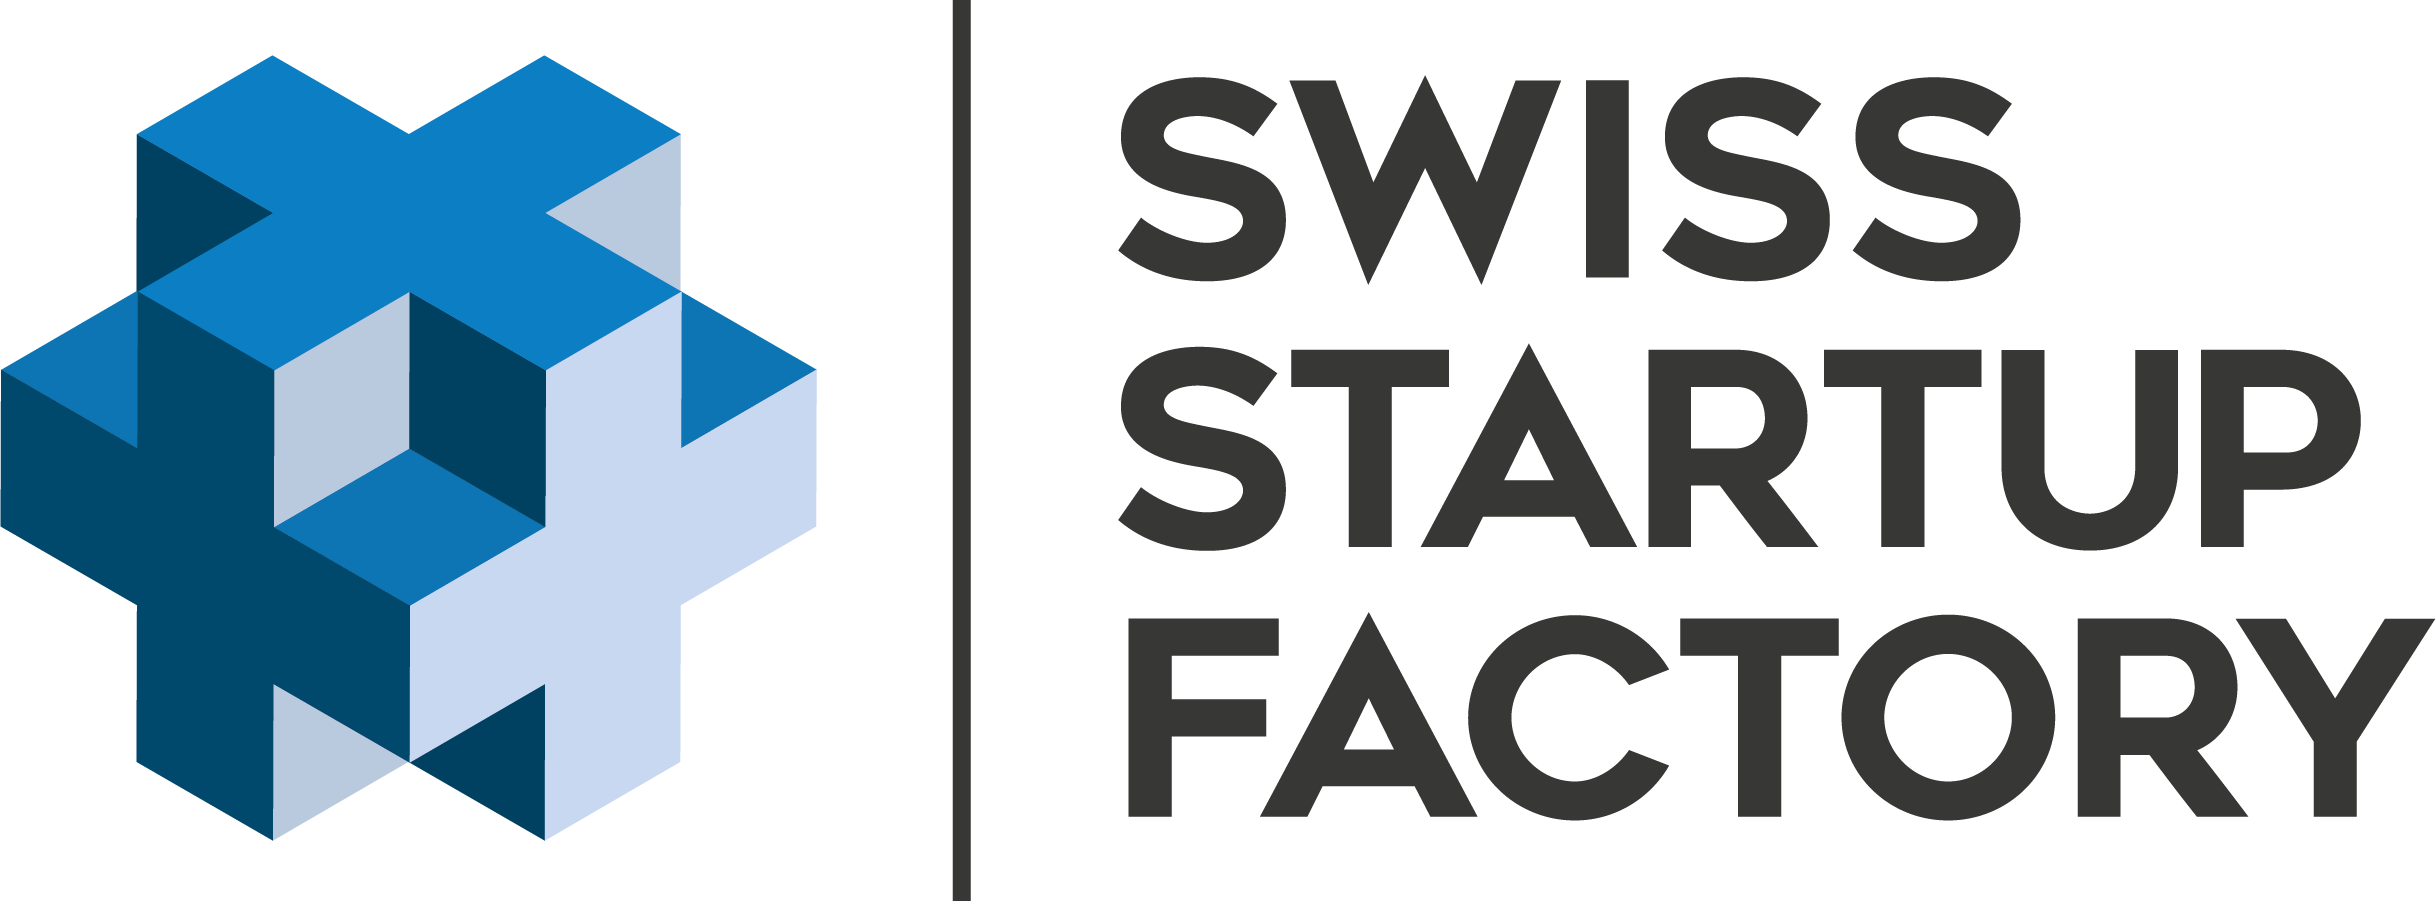 Swiss Startup Factory